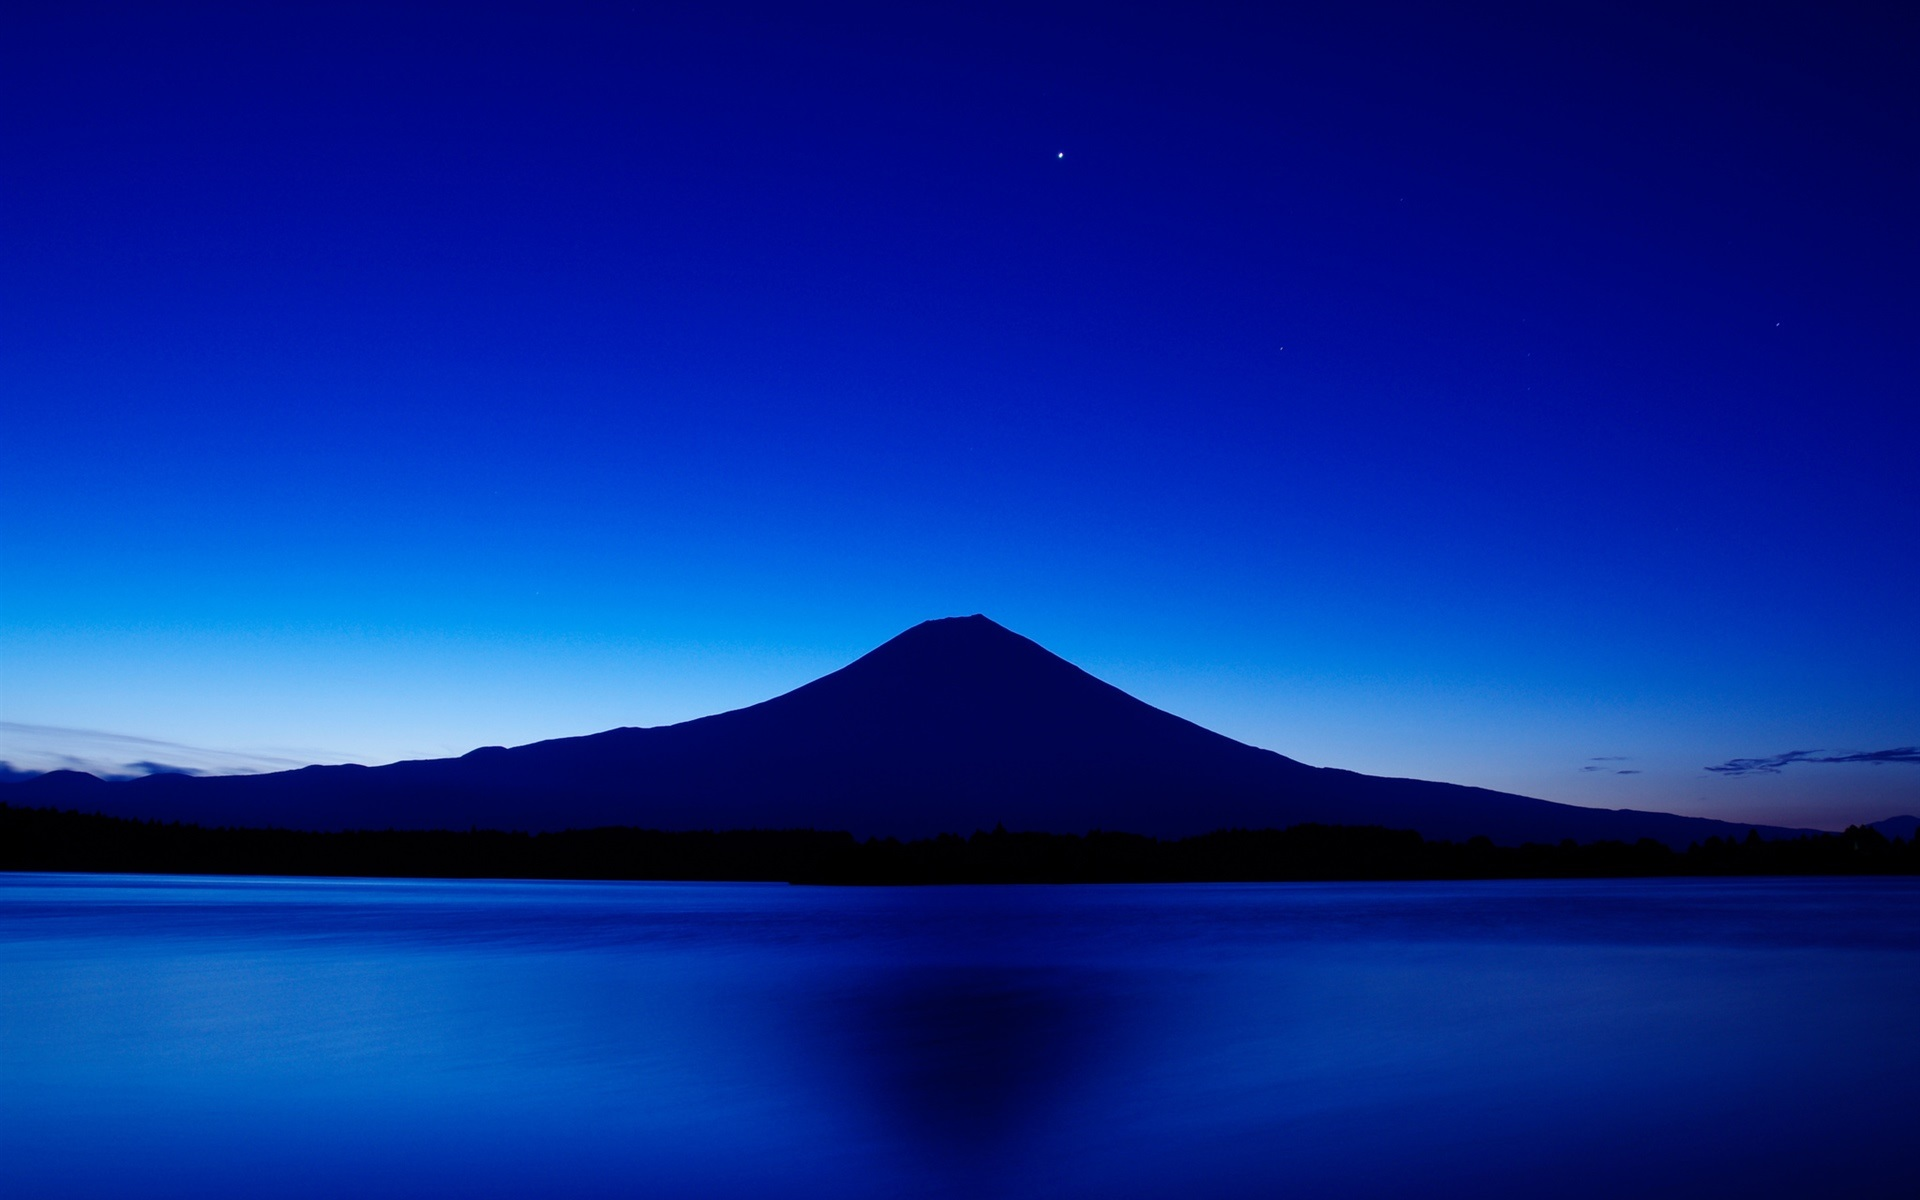 Wallpaper Japan Mount Fuji Blue Sky Lake Night 1920x1200